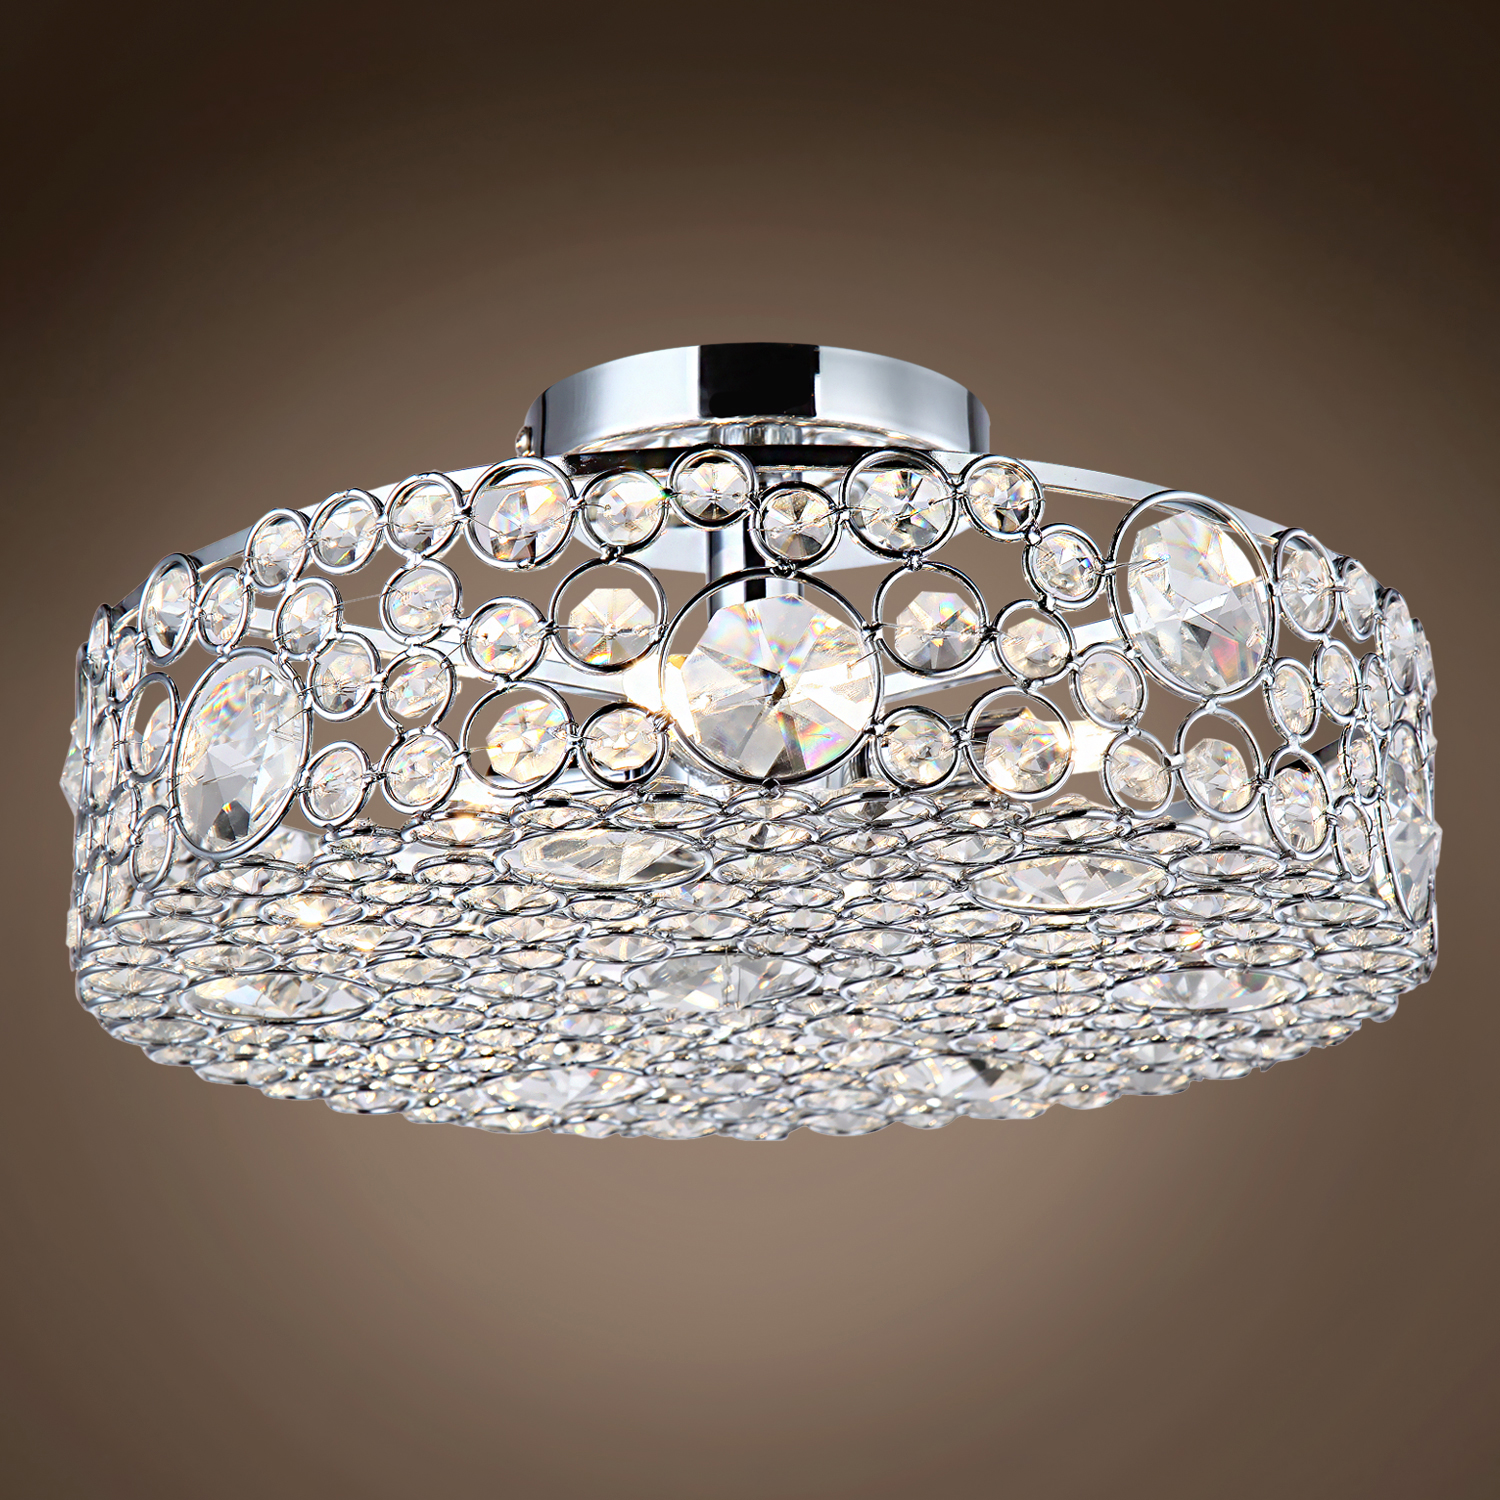 Joshua Marshal Limited Edition 4 Light 13 Quot Round Crystal